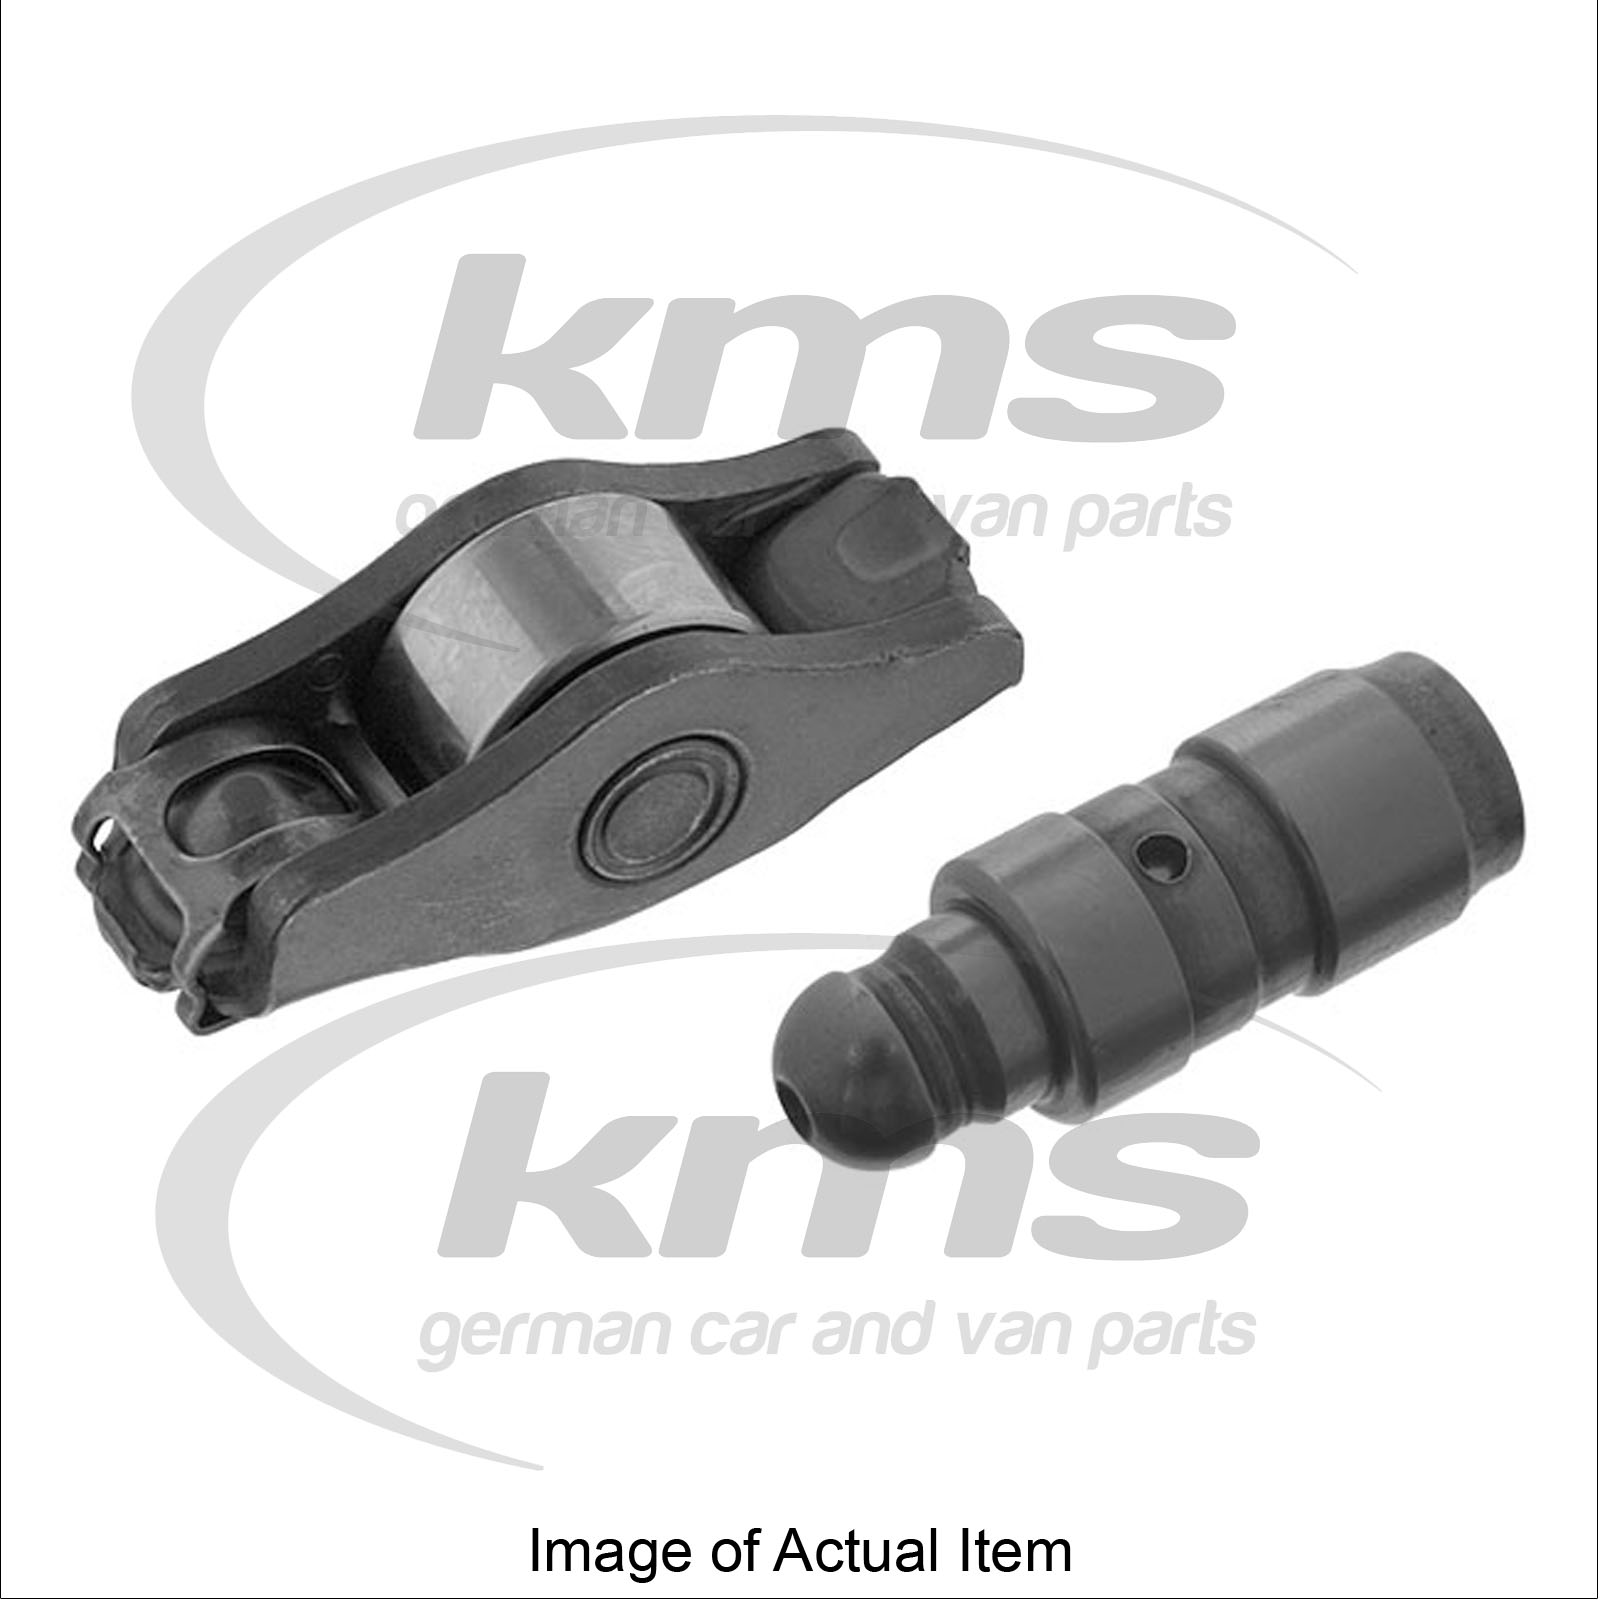 HYDRAULIC CAM FOLLOWER KIT Audi A1 Hatchback TDI 8X (2010-) 1.6L - 104 BHP Top G